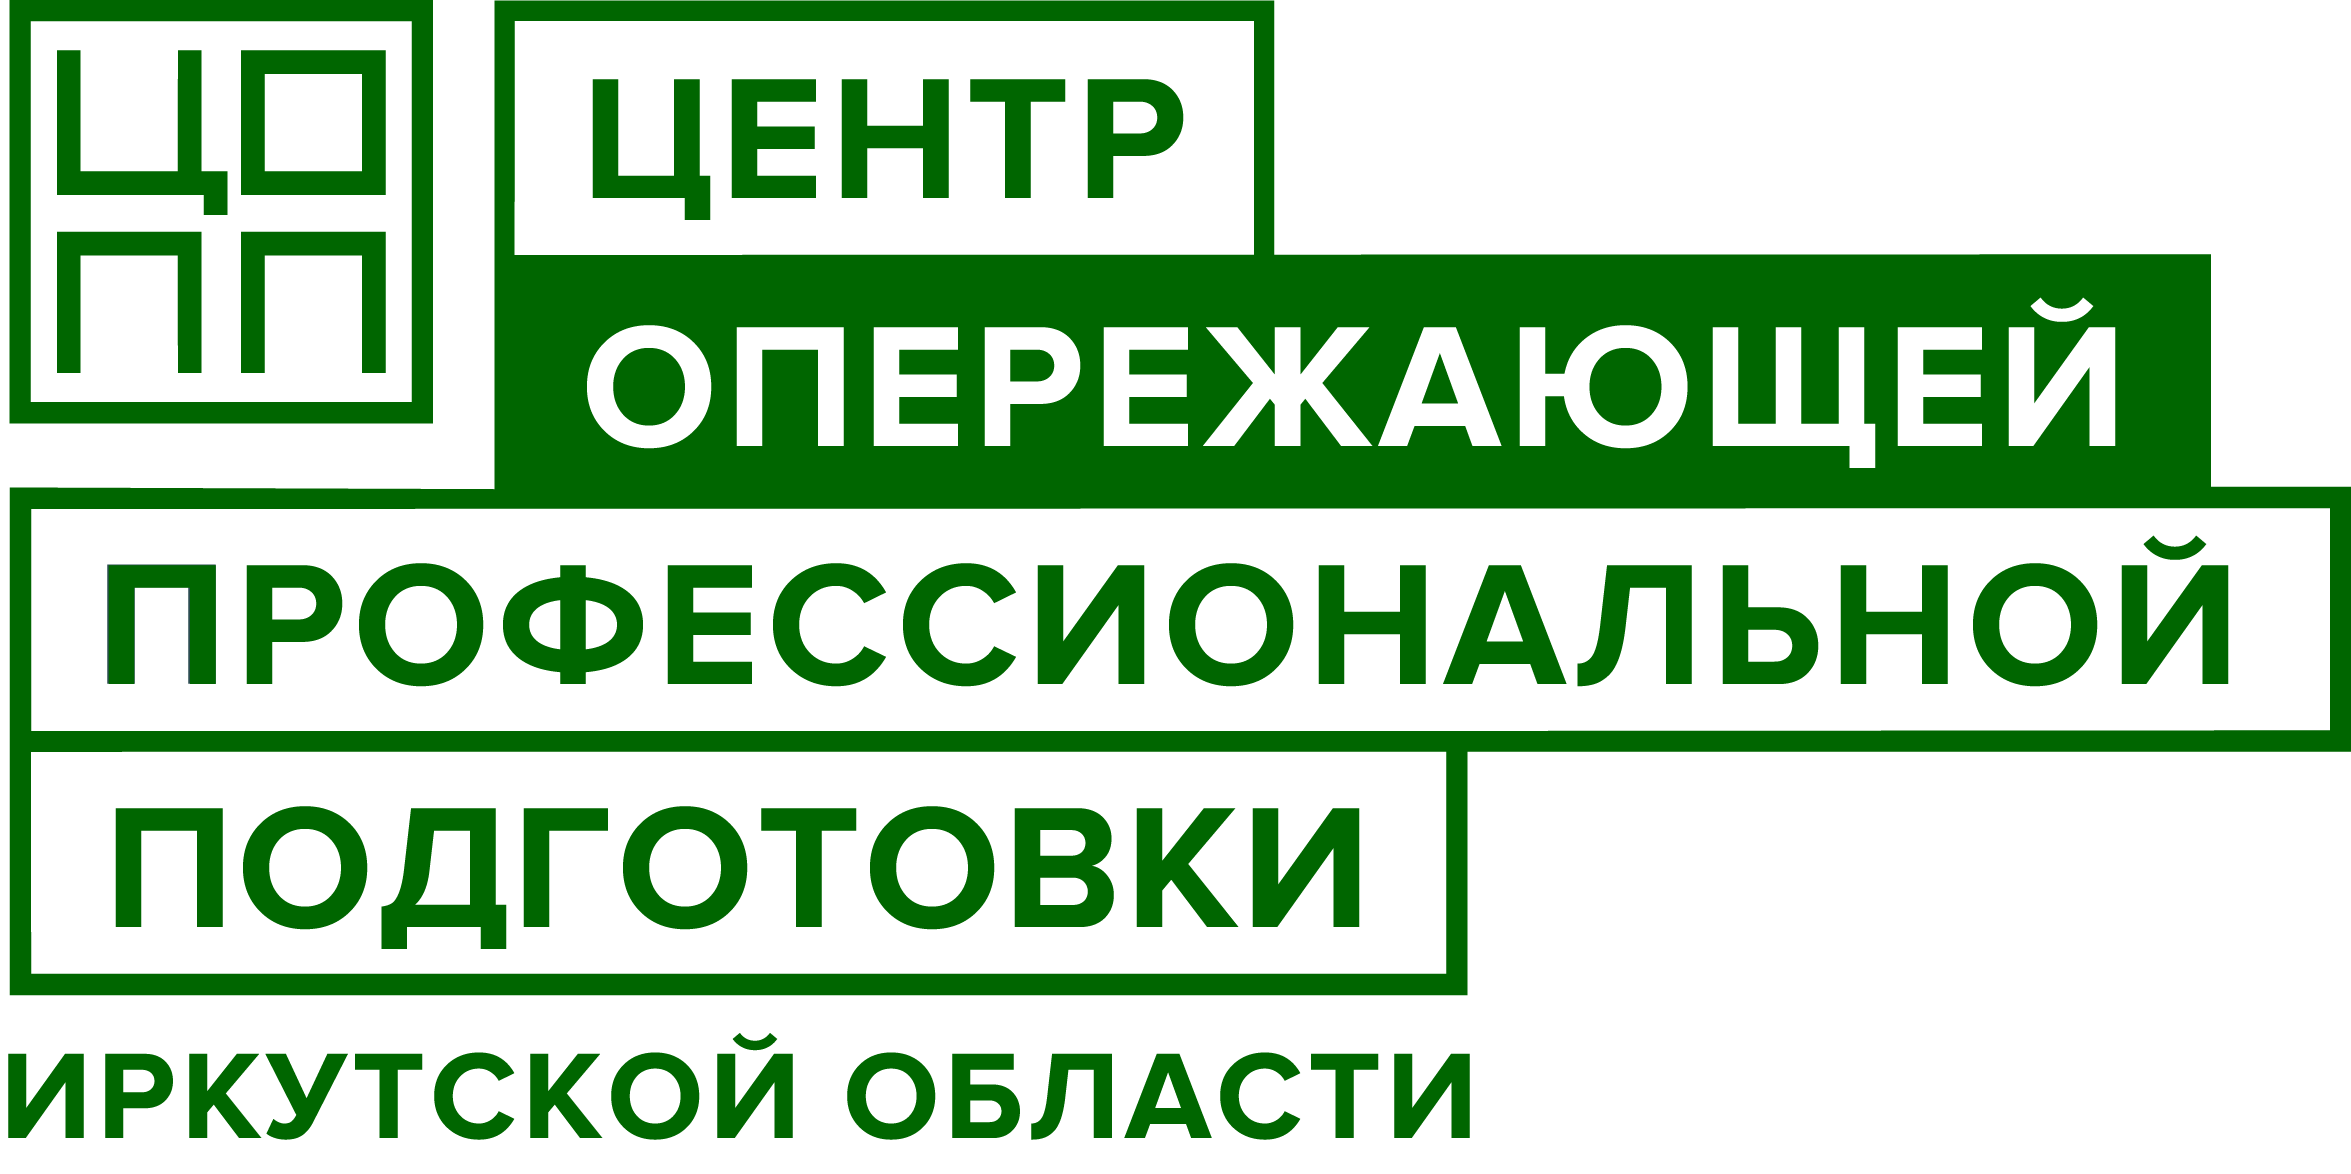 https://public.superjob.ru/spreaded/images/landing_page_theme/logo_big.16.1e4687b059c0ef55cd453c7e2a27cae4.png